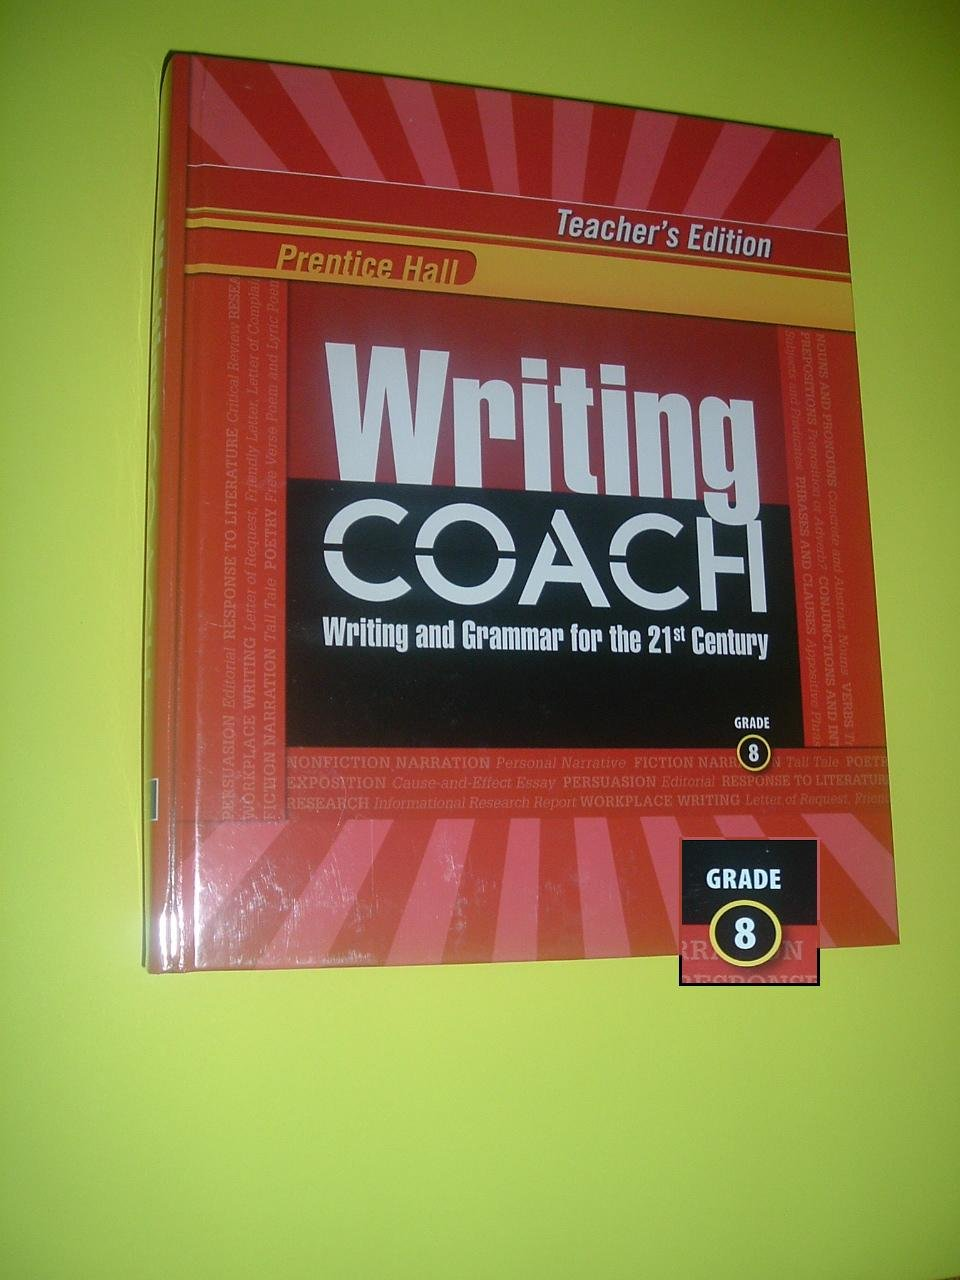 Download Writing Coach Writing and Grammar for the 21st Century - Grade 8 Teacher's Edition, Prentice Hall PDF